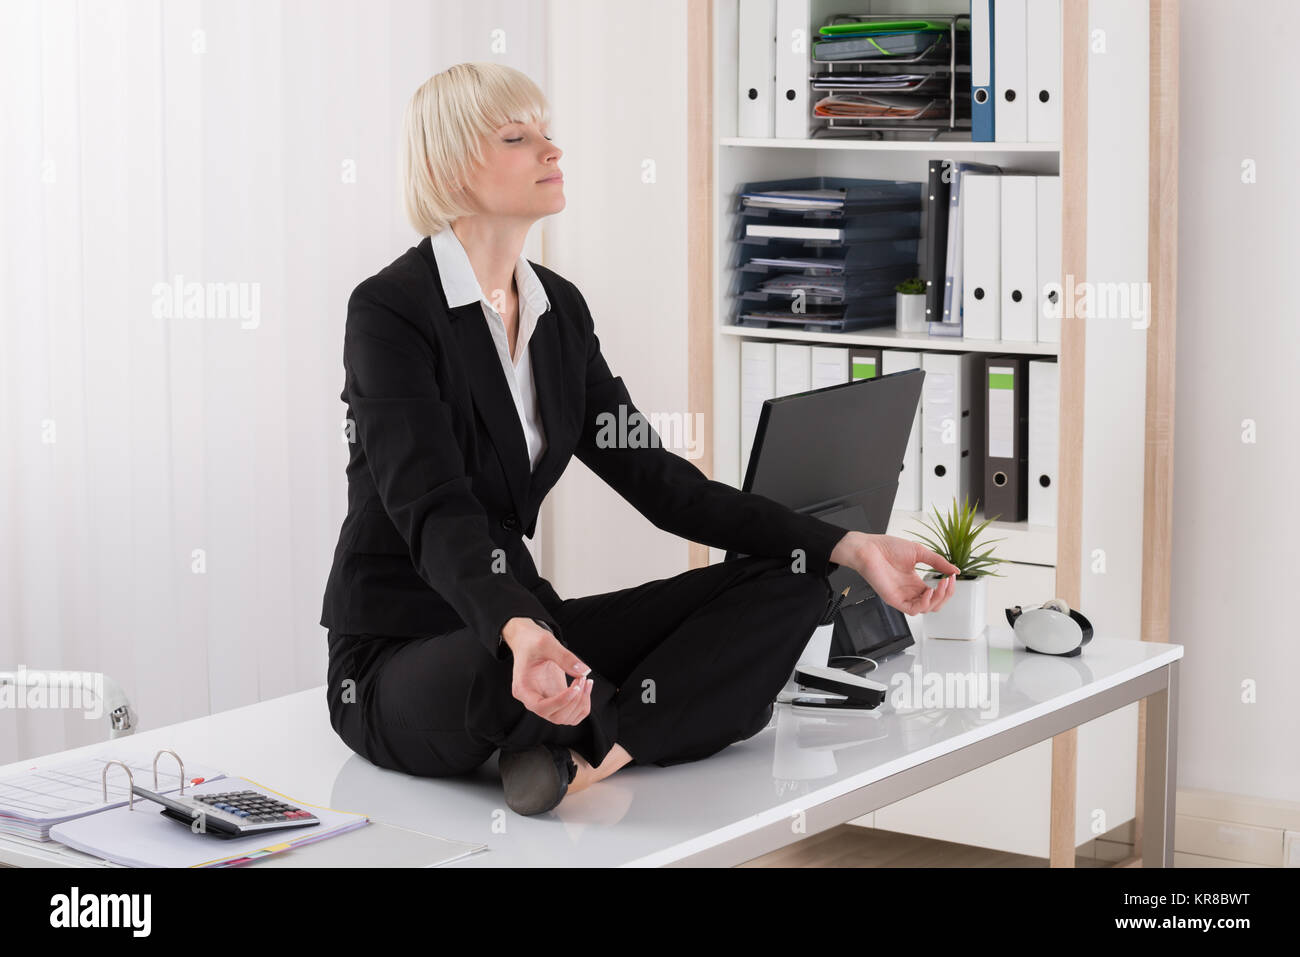 Businesswoman Doing Yoga In Office - Stock Image